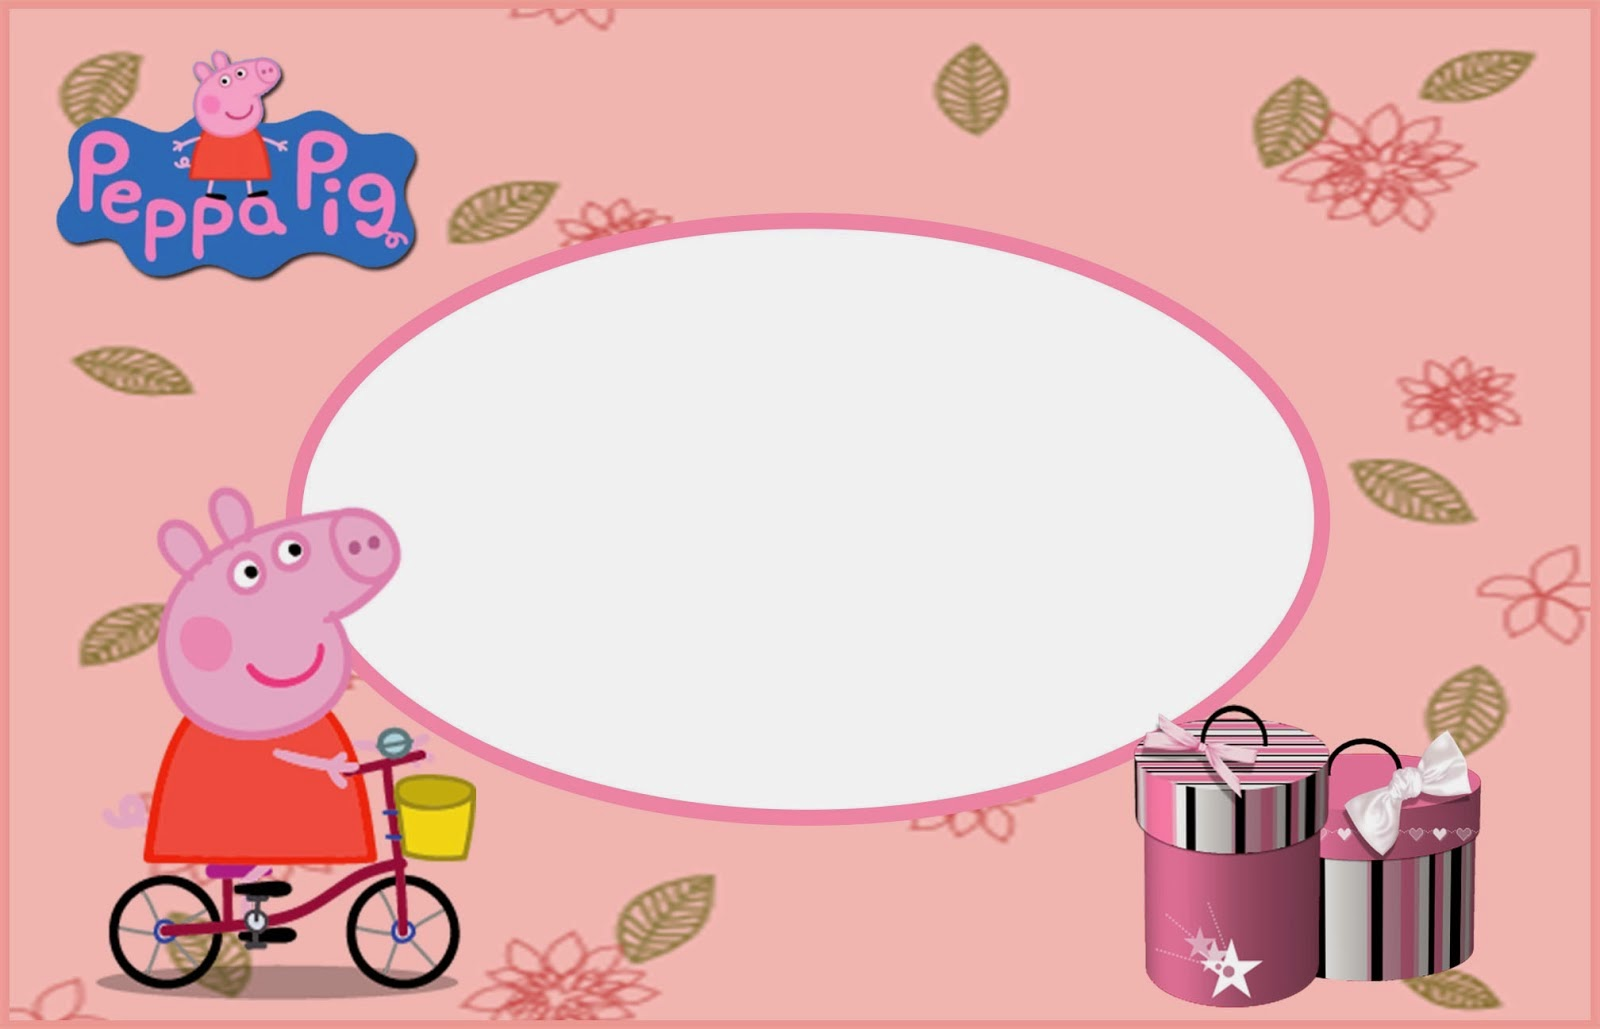 Peppa Pig: Free Printable Invitations, Labels or Cards. | Oh My ...